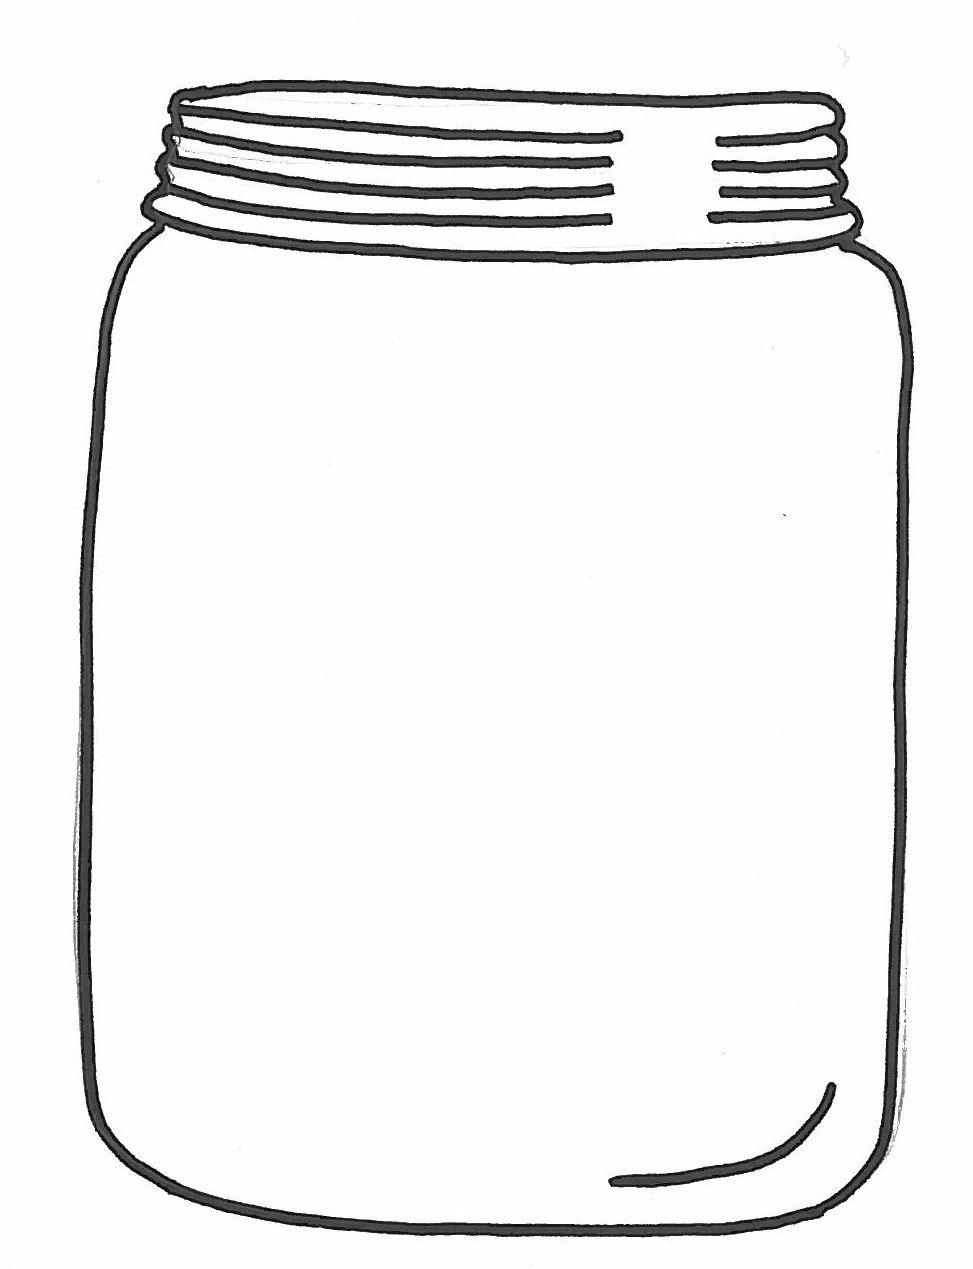 photo regarding Mason Jar Printable called Illustrations or photos Of Mason Jars Absolutely free down load simplest Pics Of